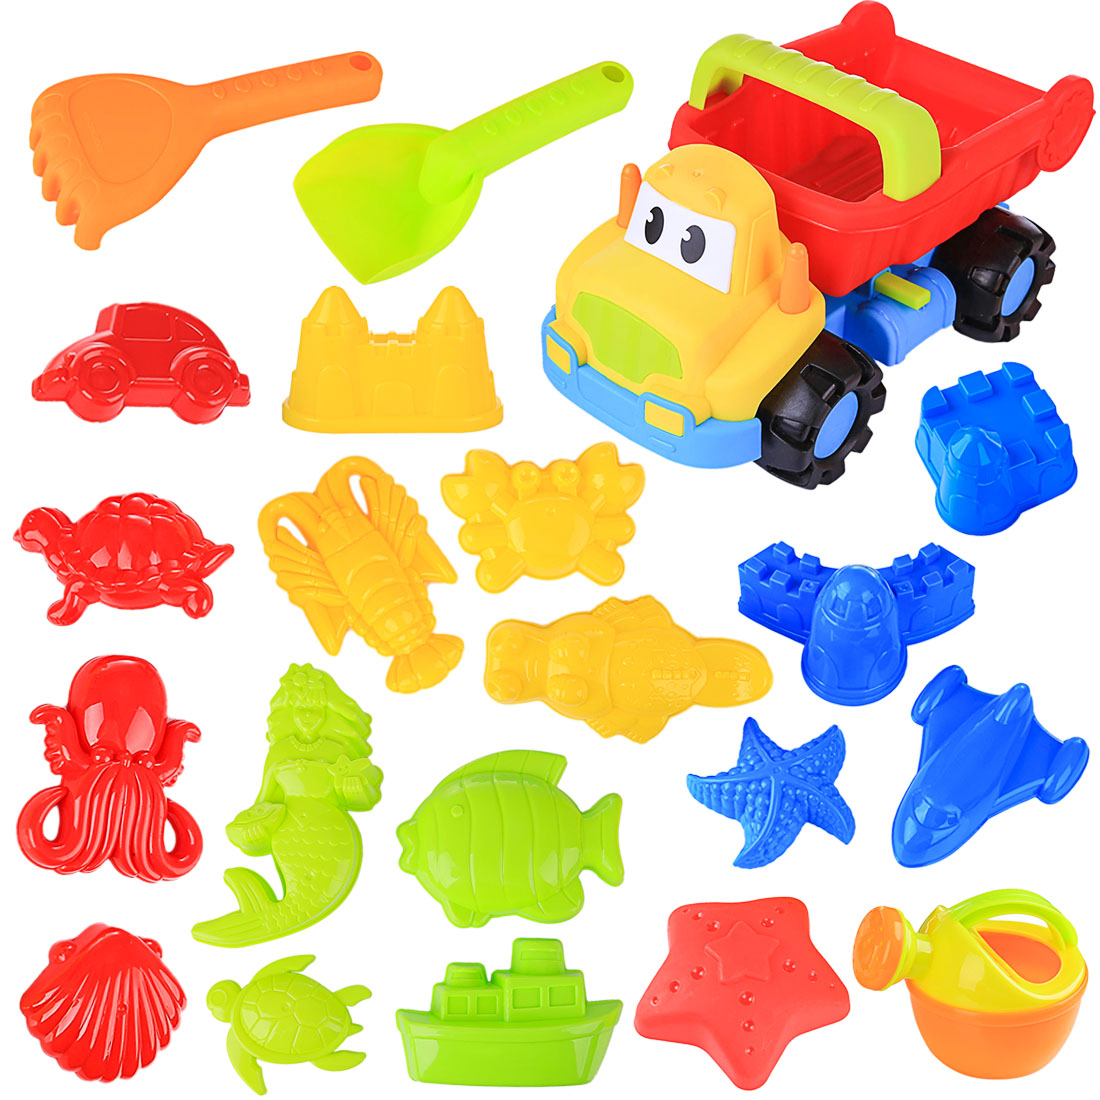 21Pcs Large Size Summer Beach Sand Toys Sand Water Toys Plastic Beach Car Vehicle Playset For Kids Children Kit Pools Water Fun